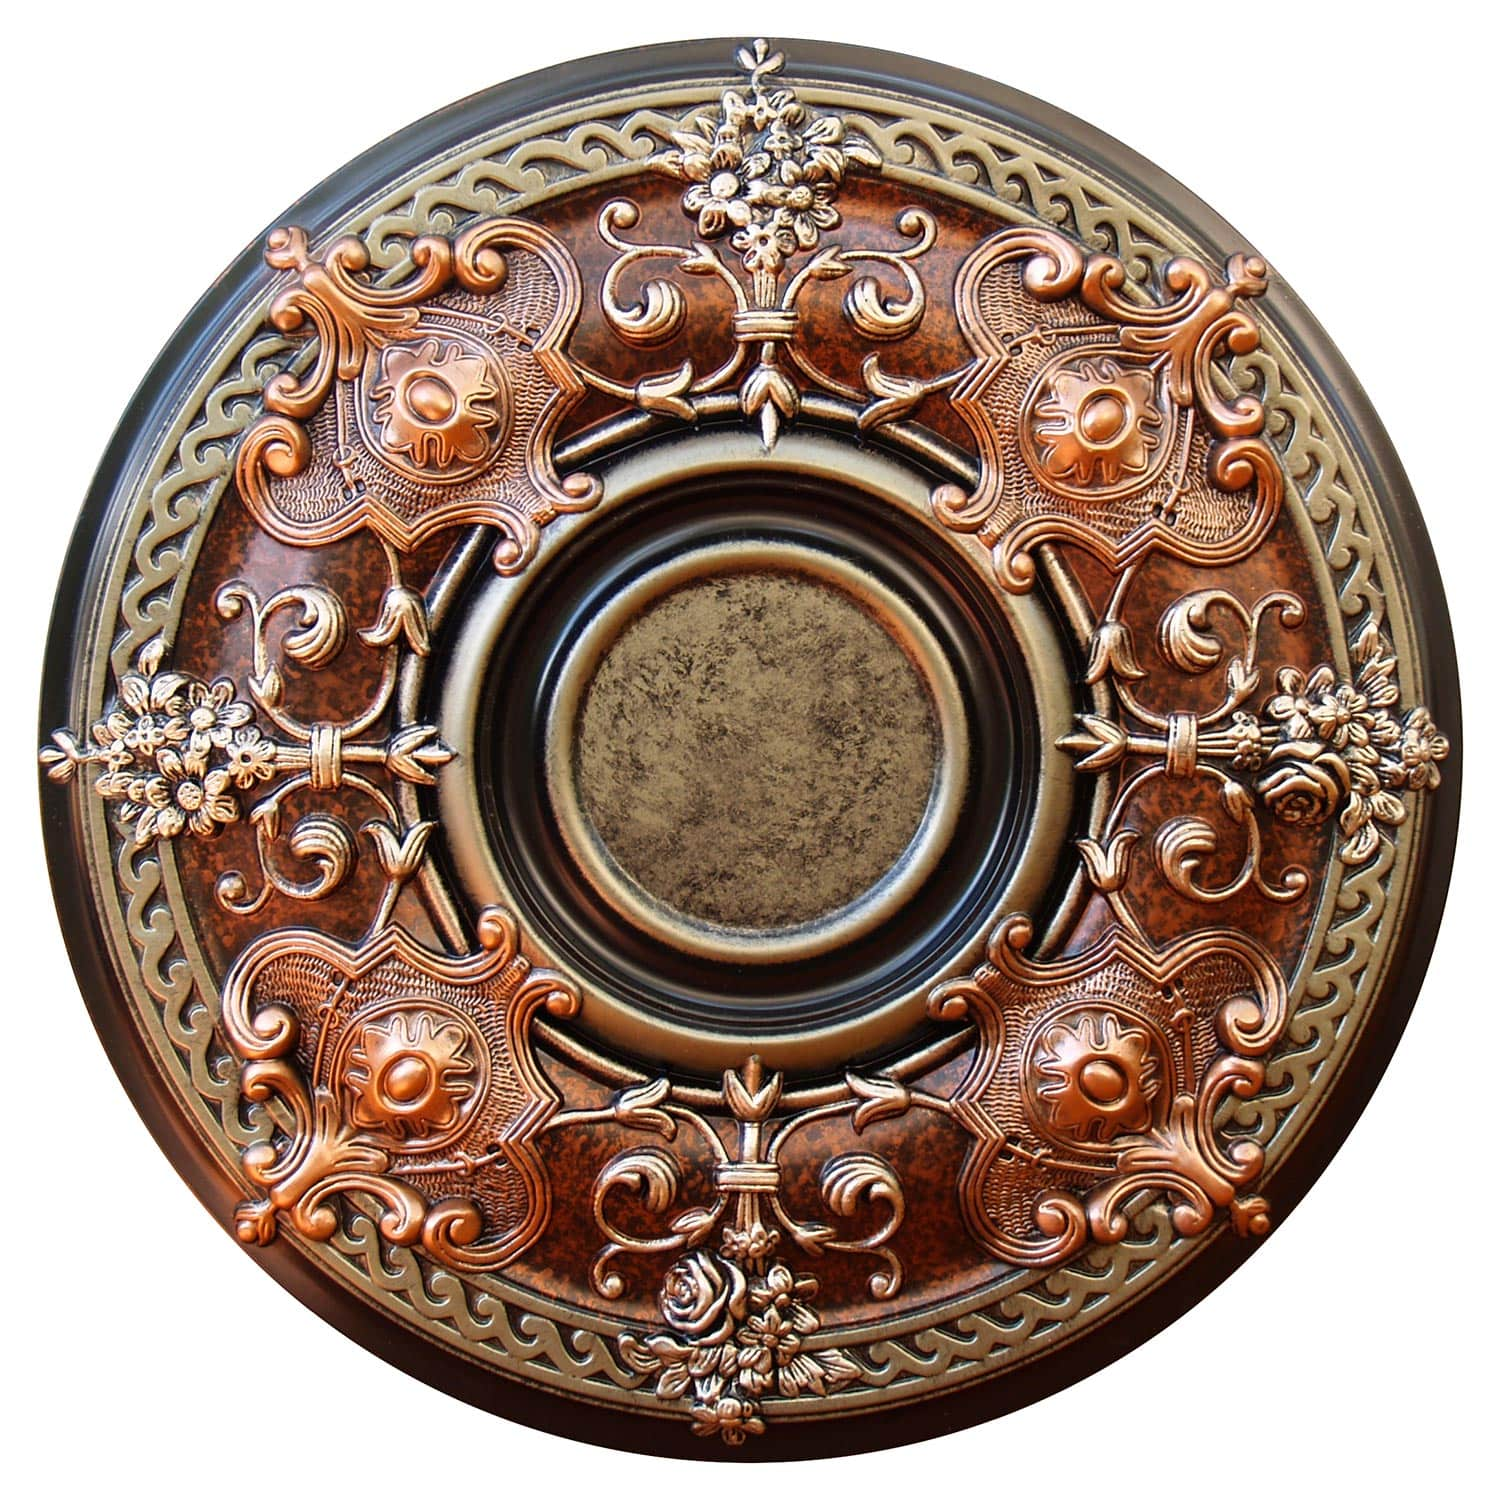 Ceiling Medallion Quot Beauty Amp Balance Quot 28 1 8 In Ccmf 035